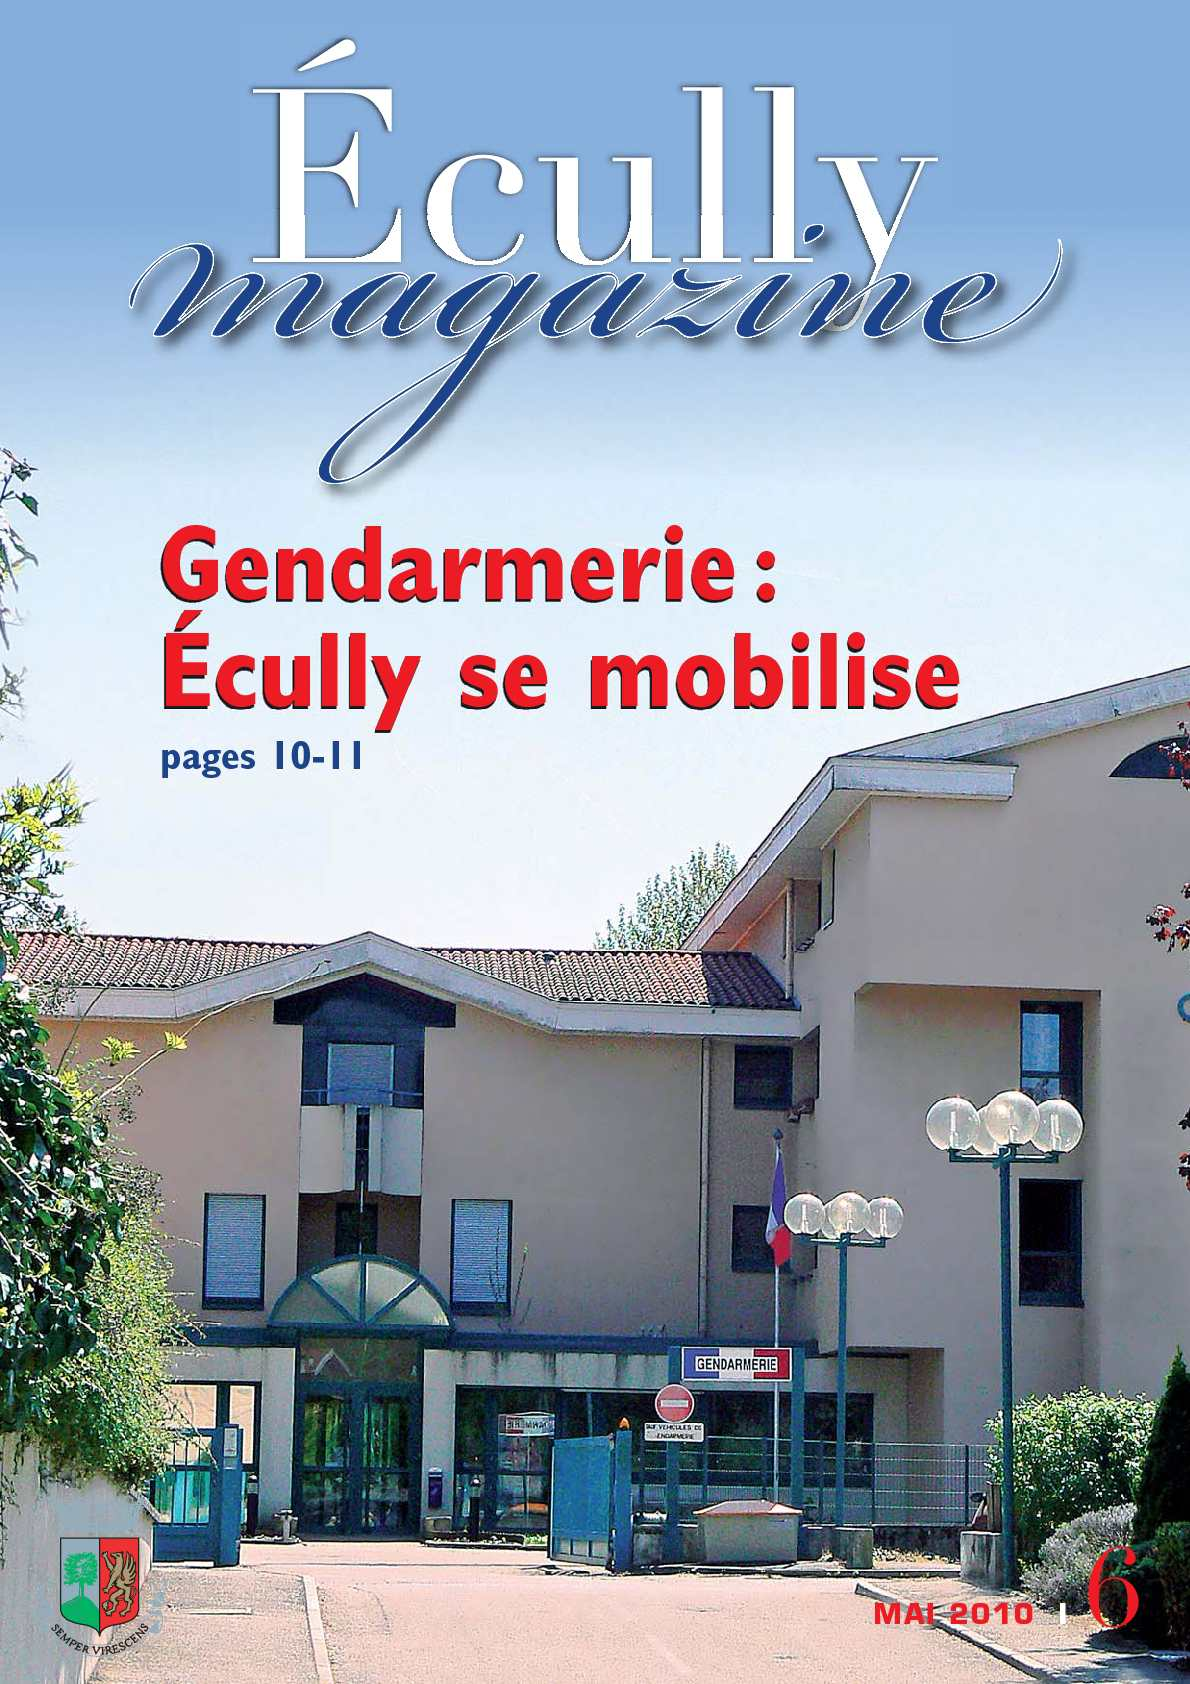 maison rencontre ecully programme